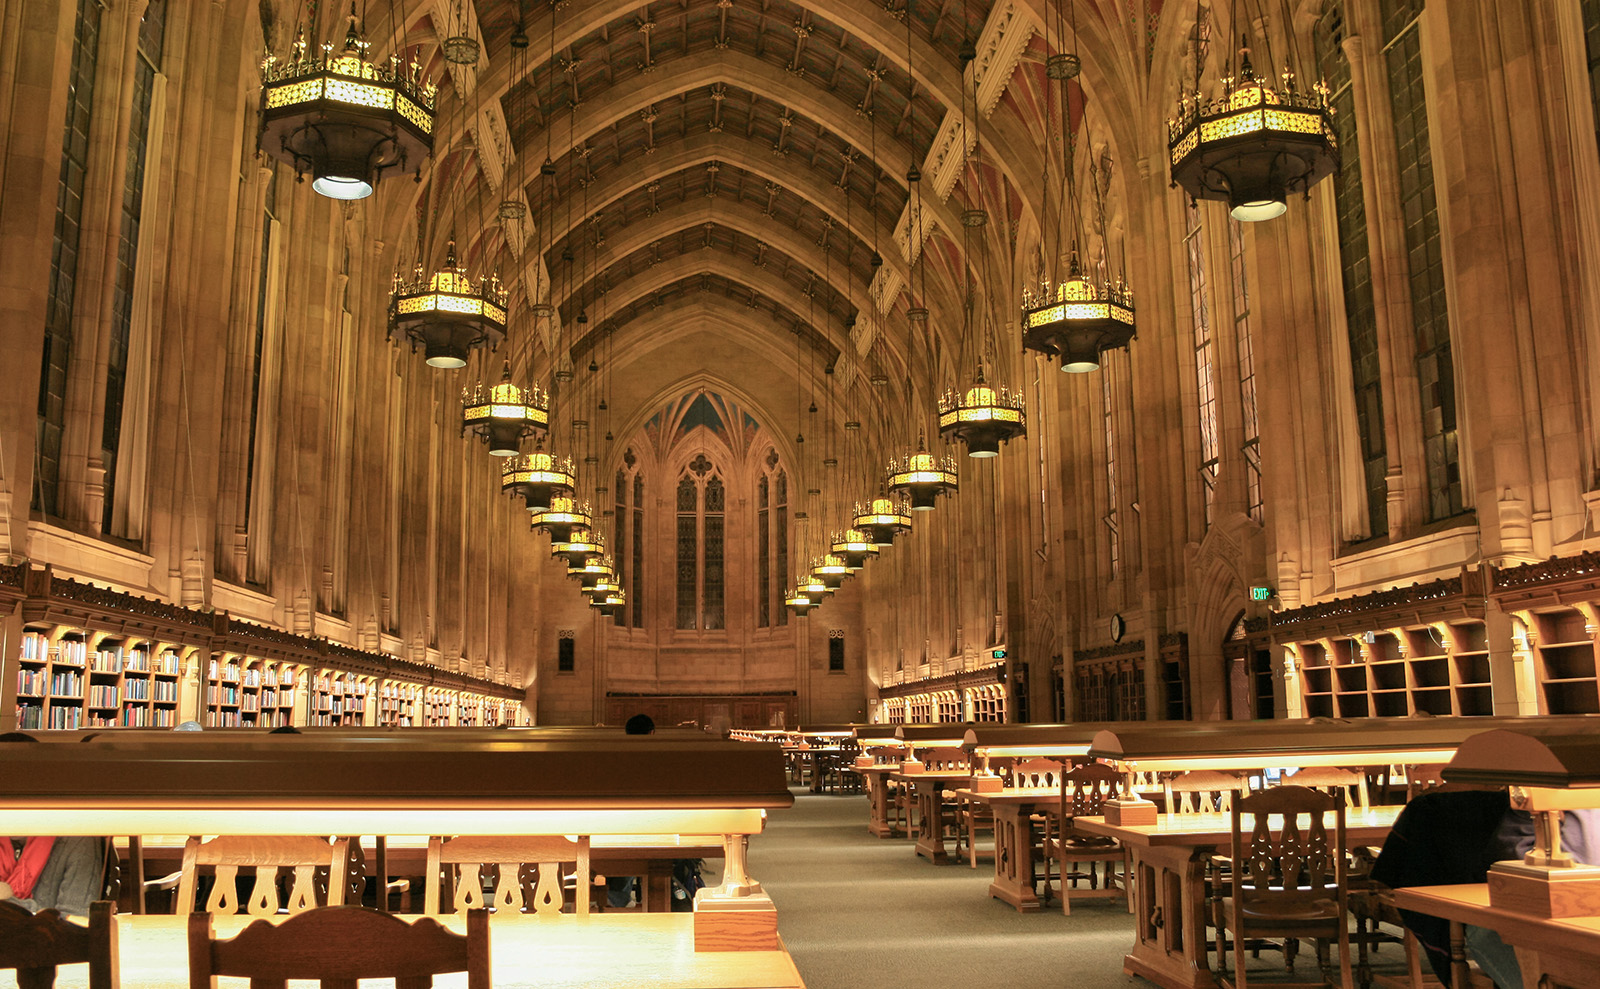 A Cathedral Library, Modern Anne Brontë, Kinder Travel & More: Endnotes 24 January